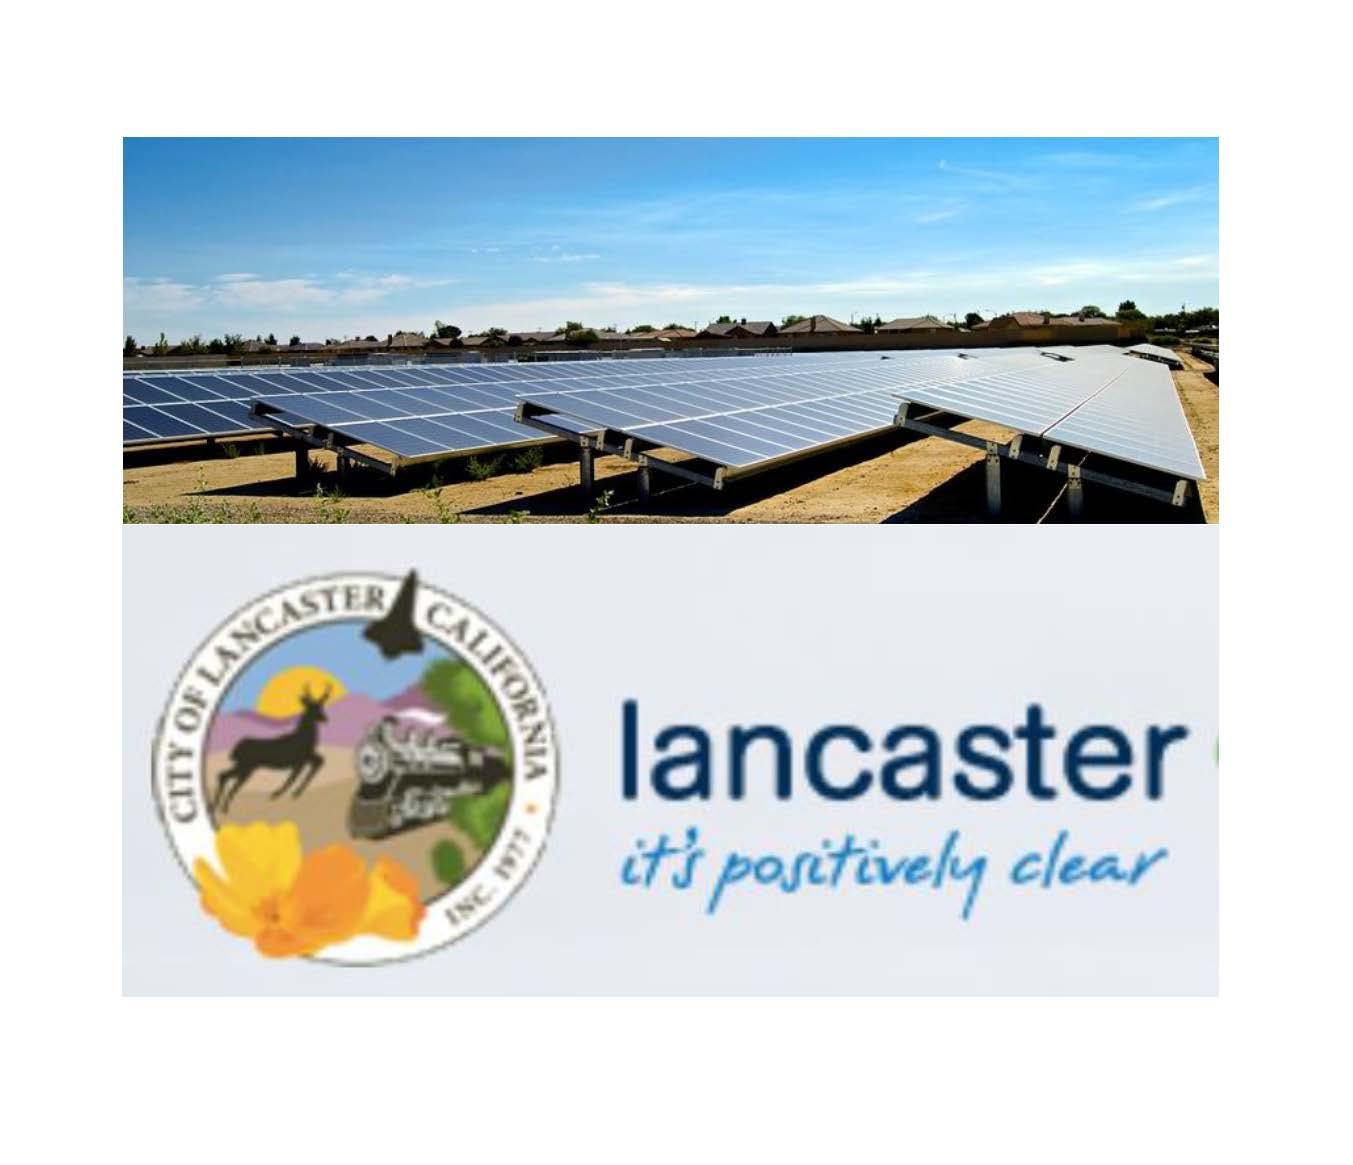 Solar fields in the City of Lancaster